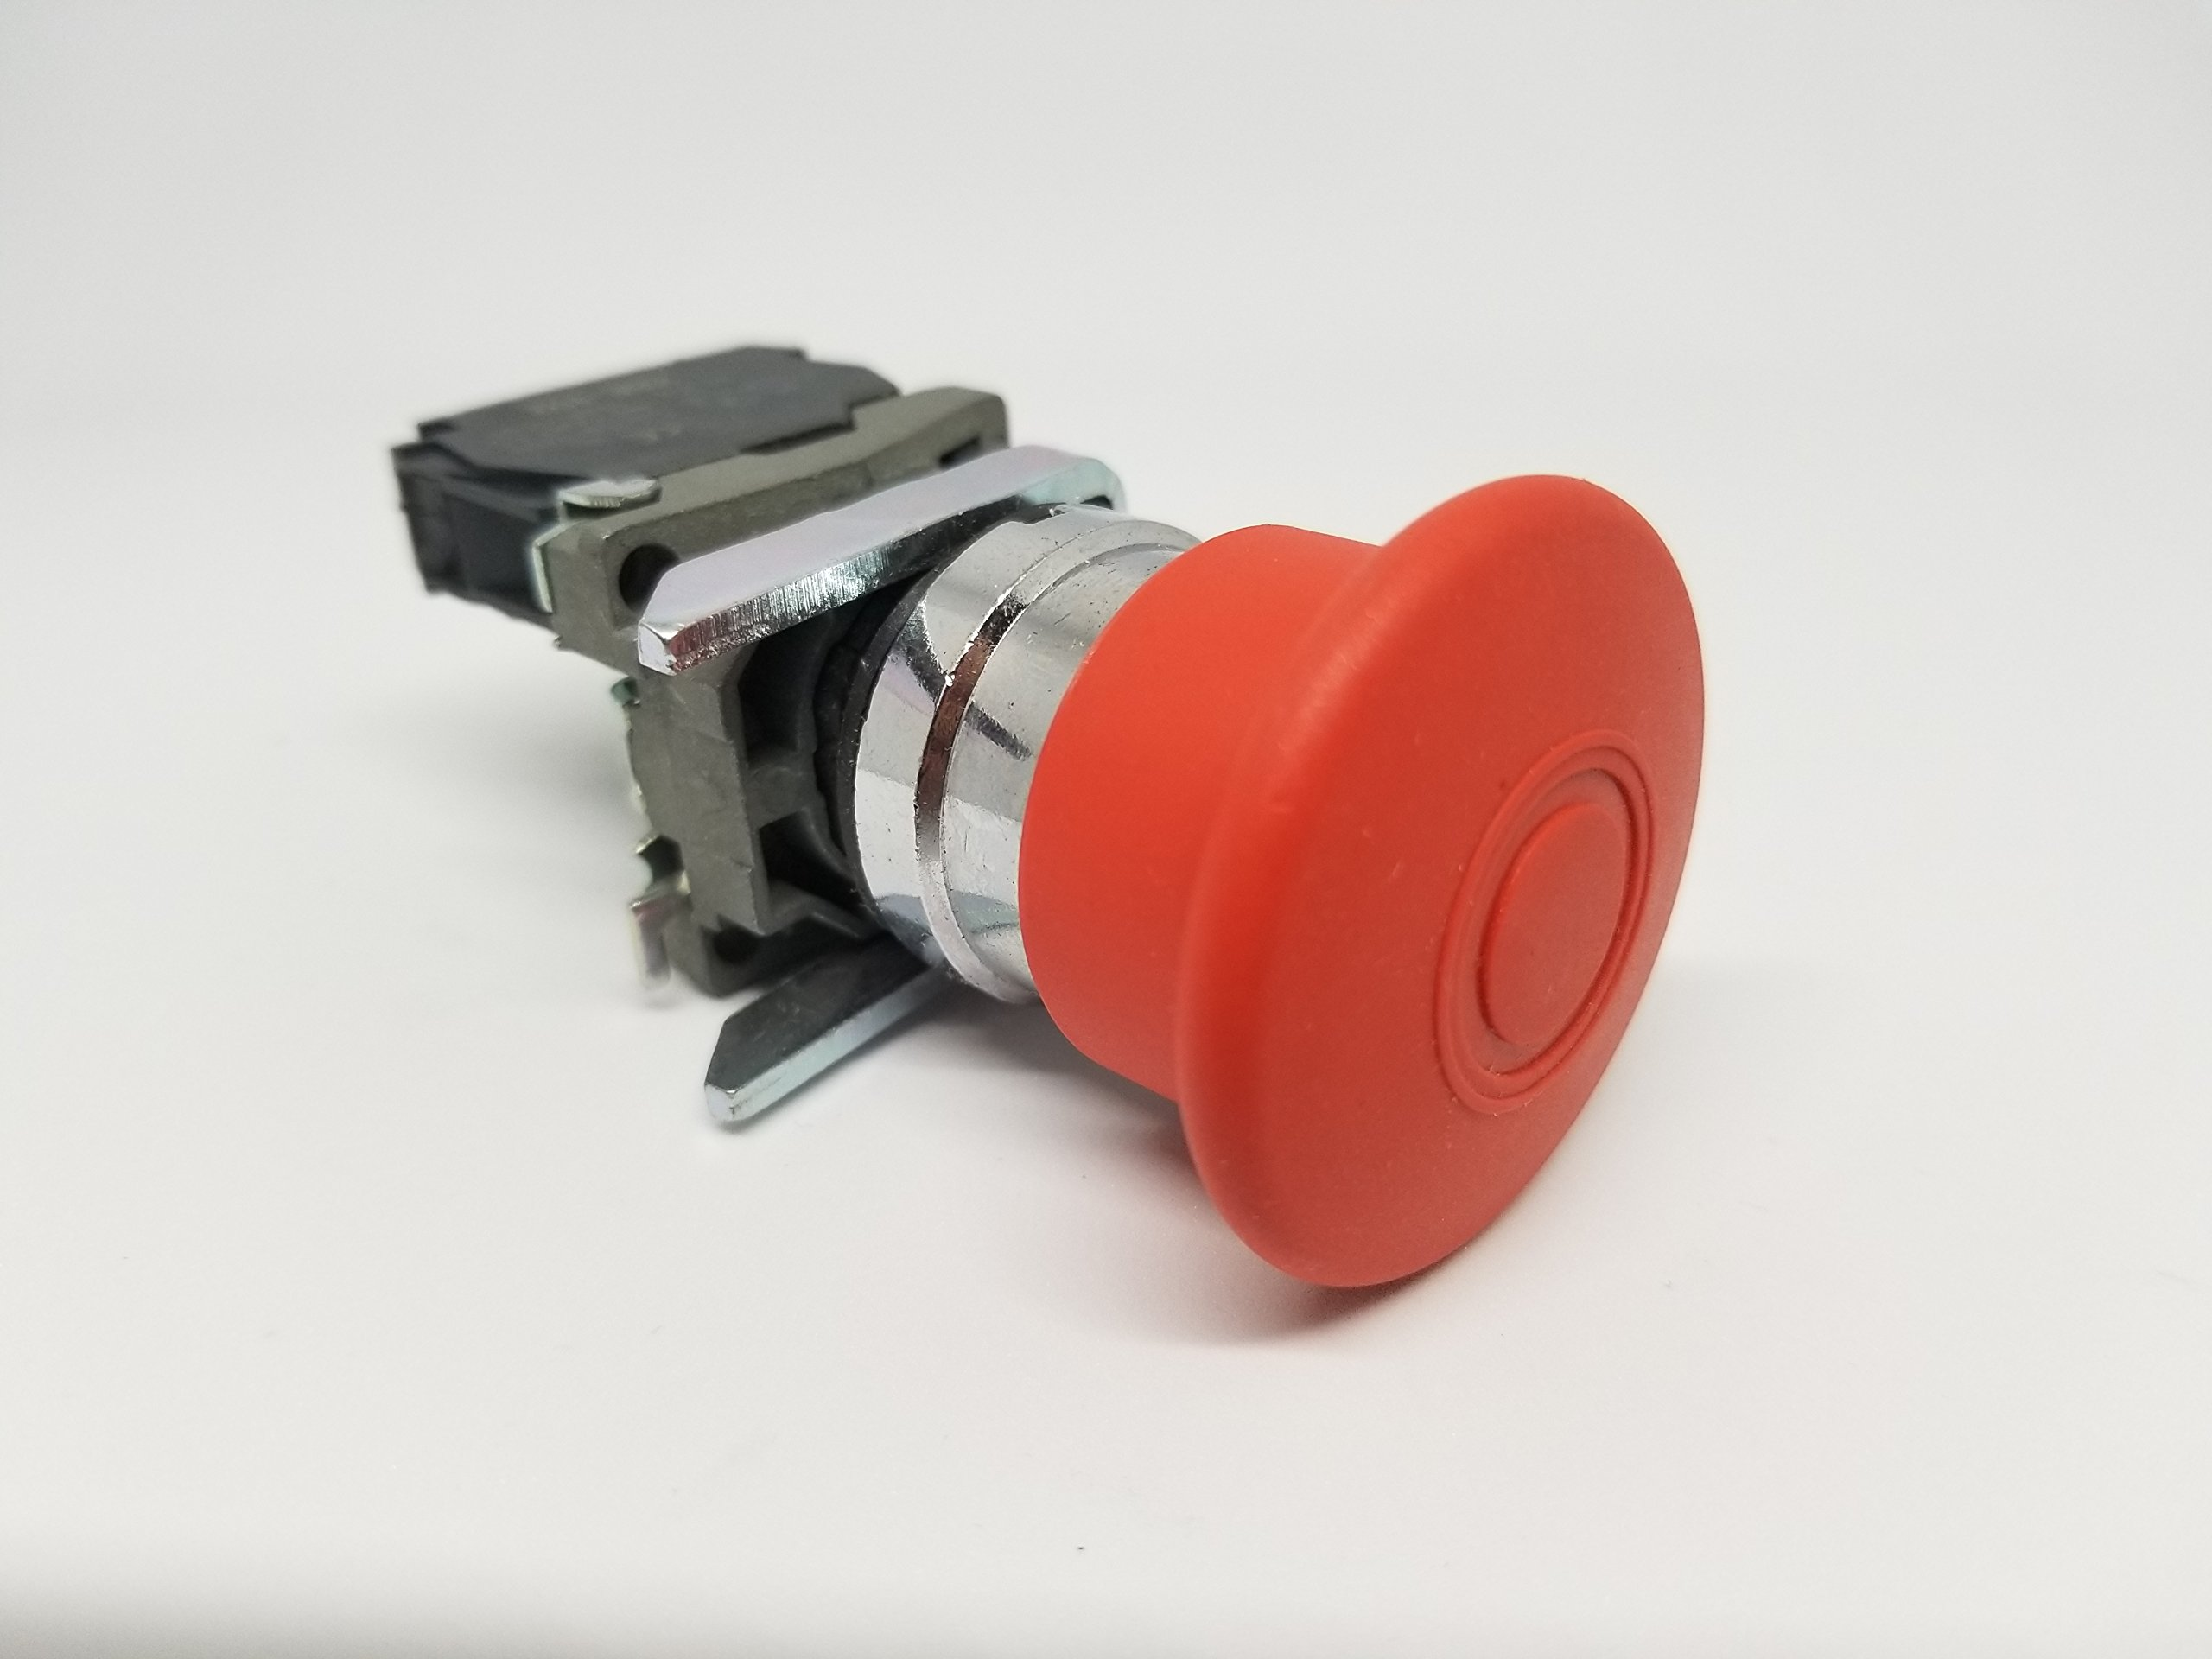 4360475 Emergency Stop Switch - Fits JLG